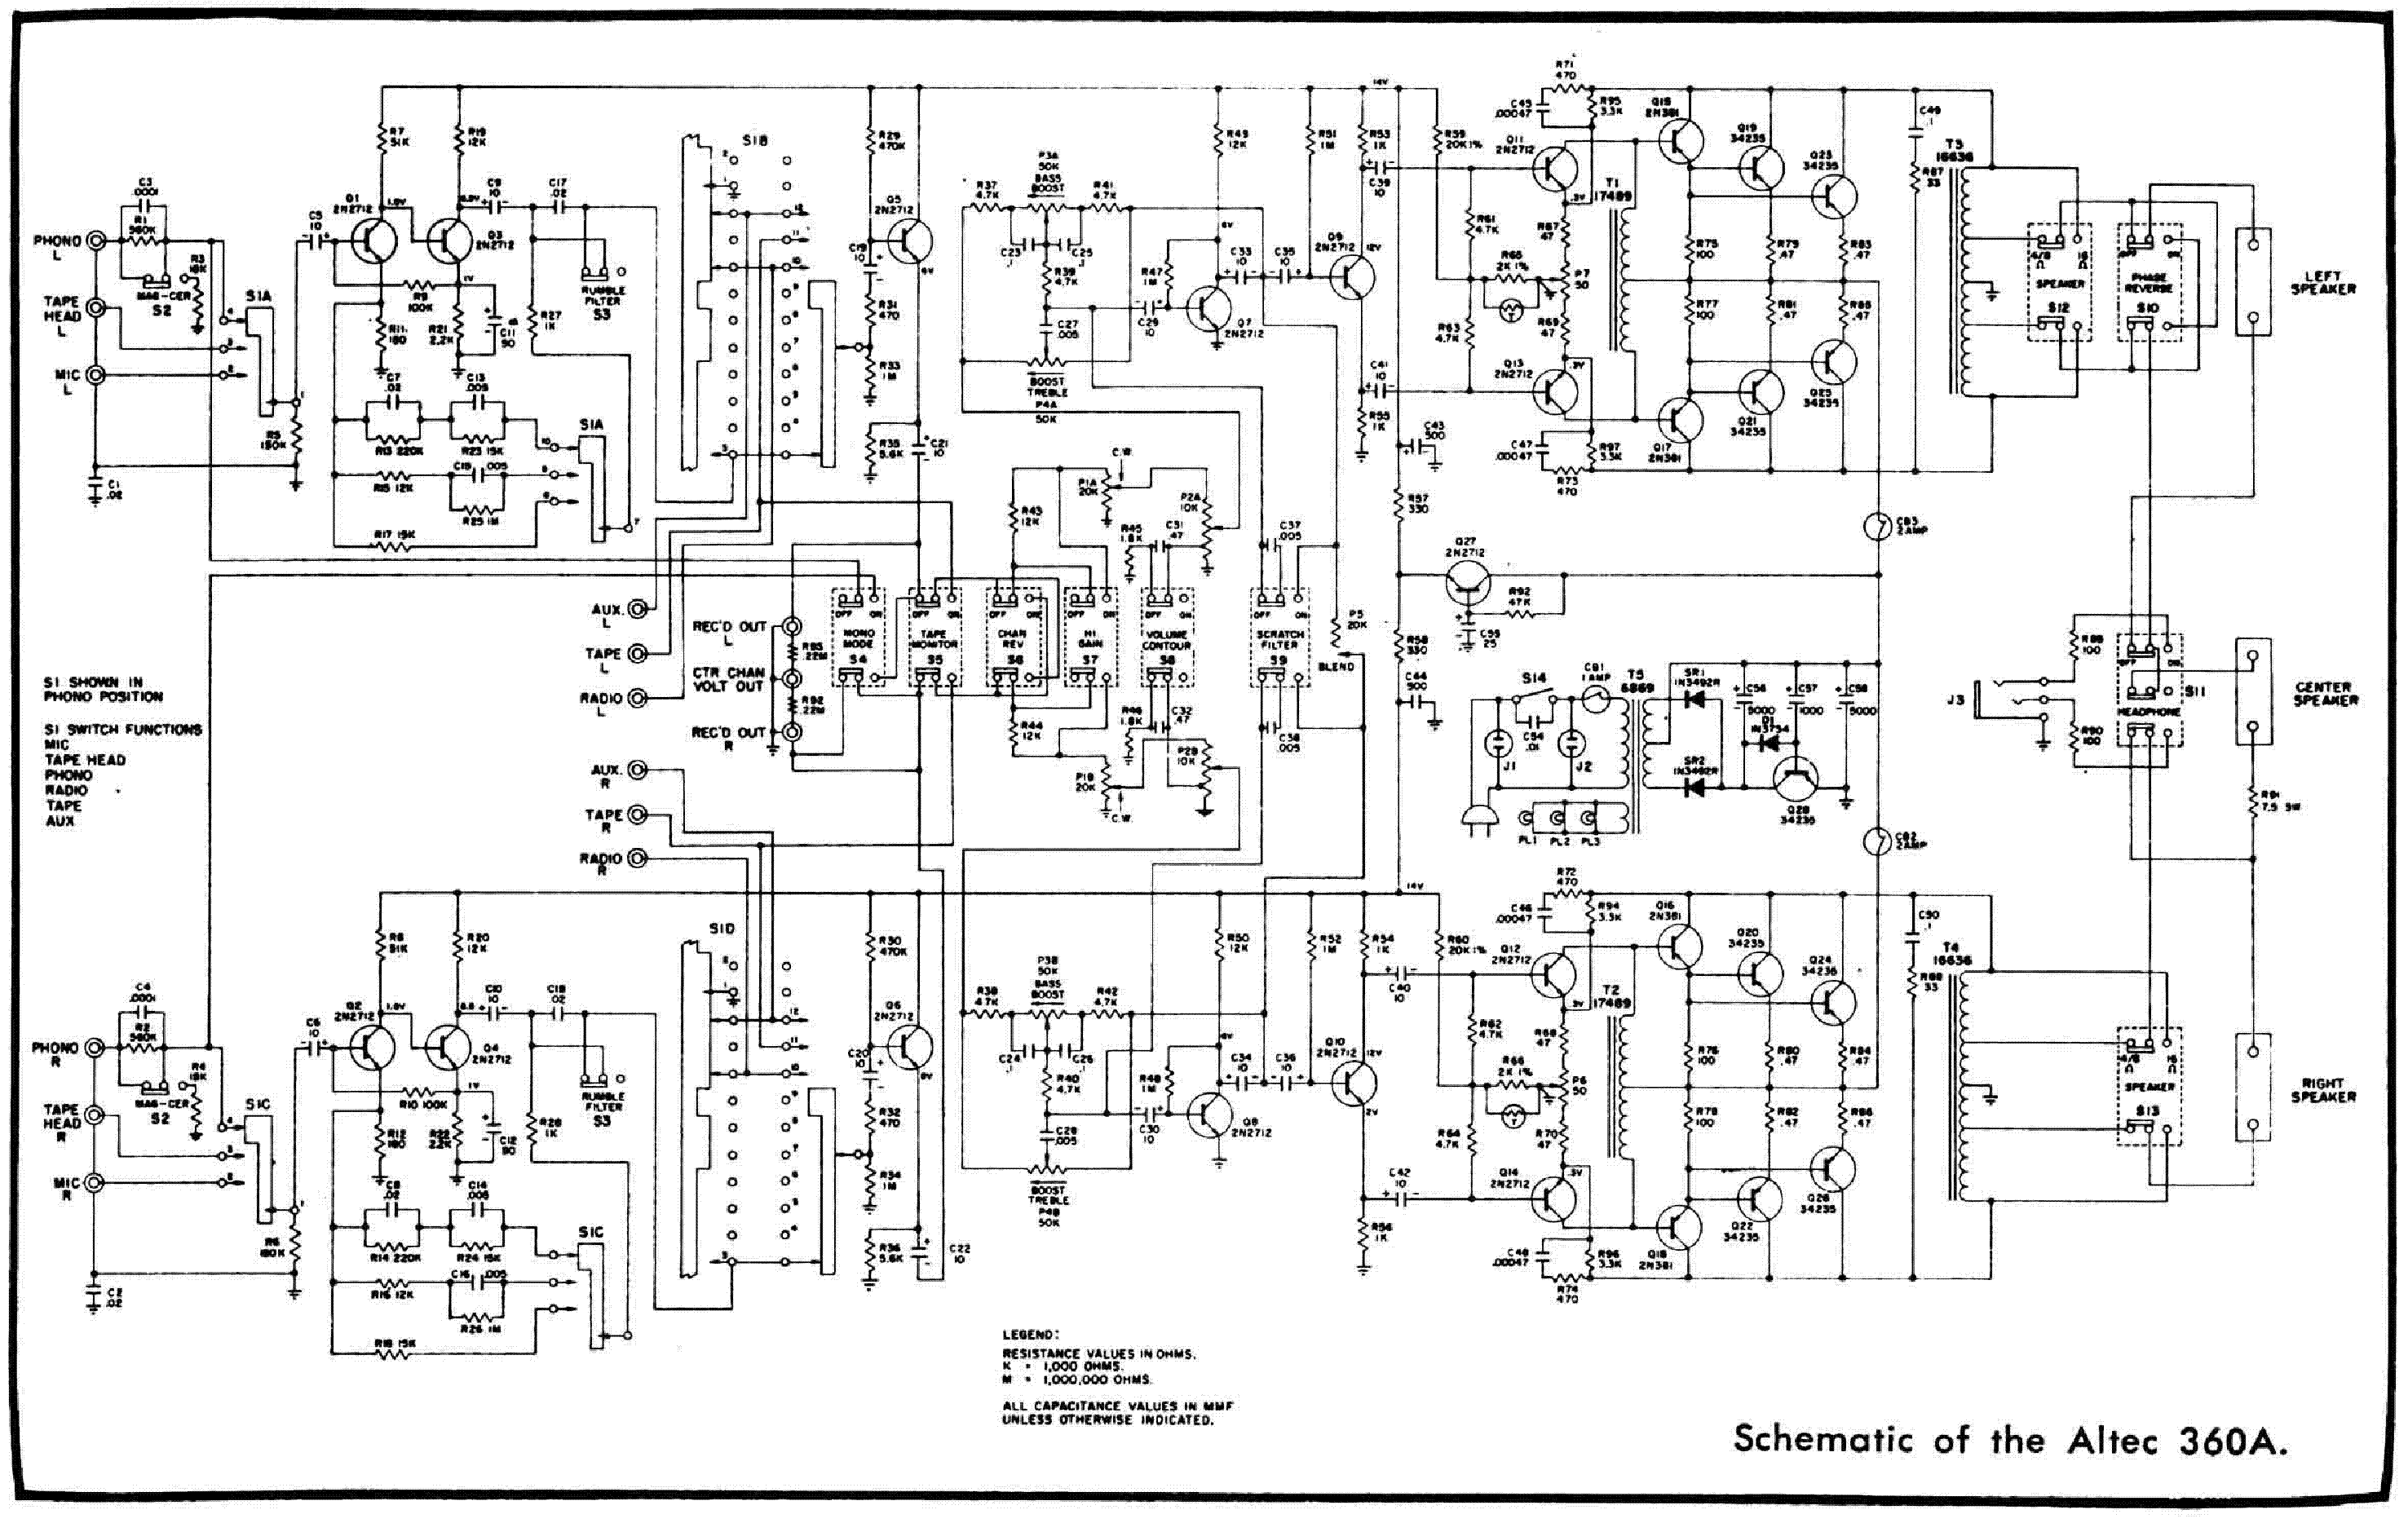 altec 360a sch service manual download  schematics  eeprom  repair info for electronics experts